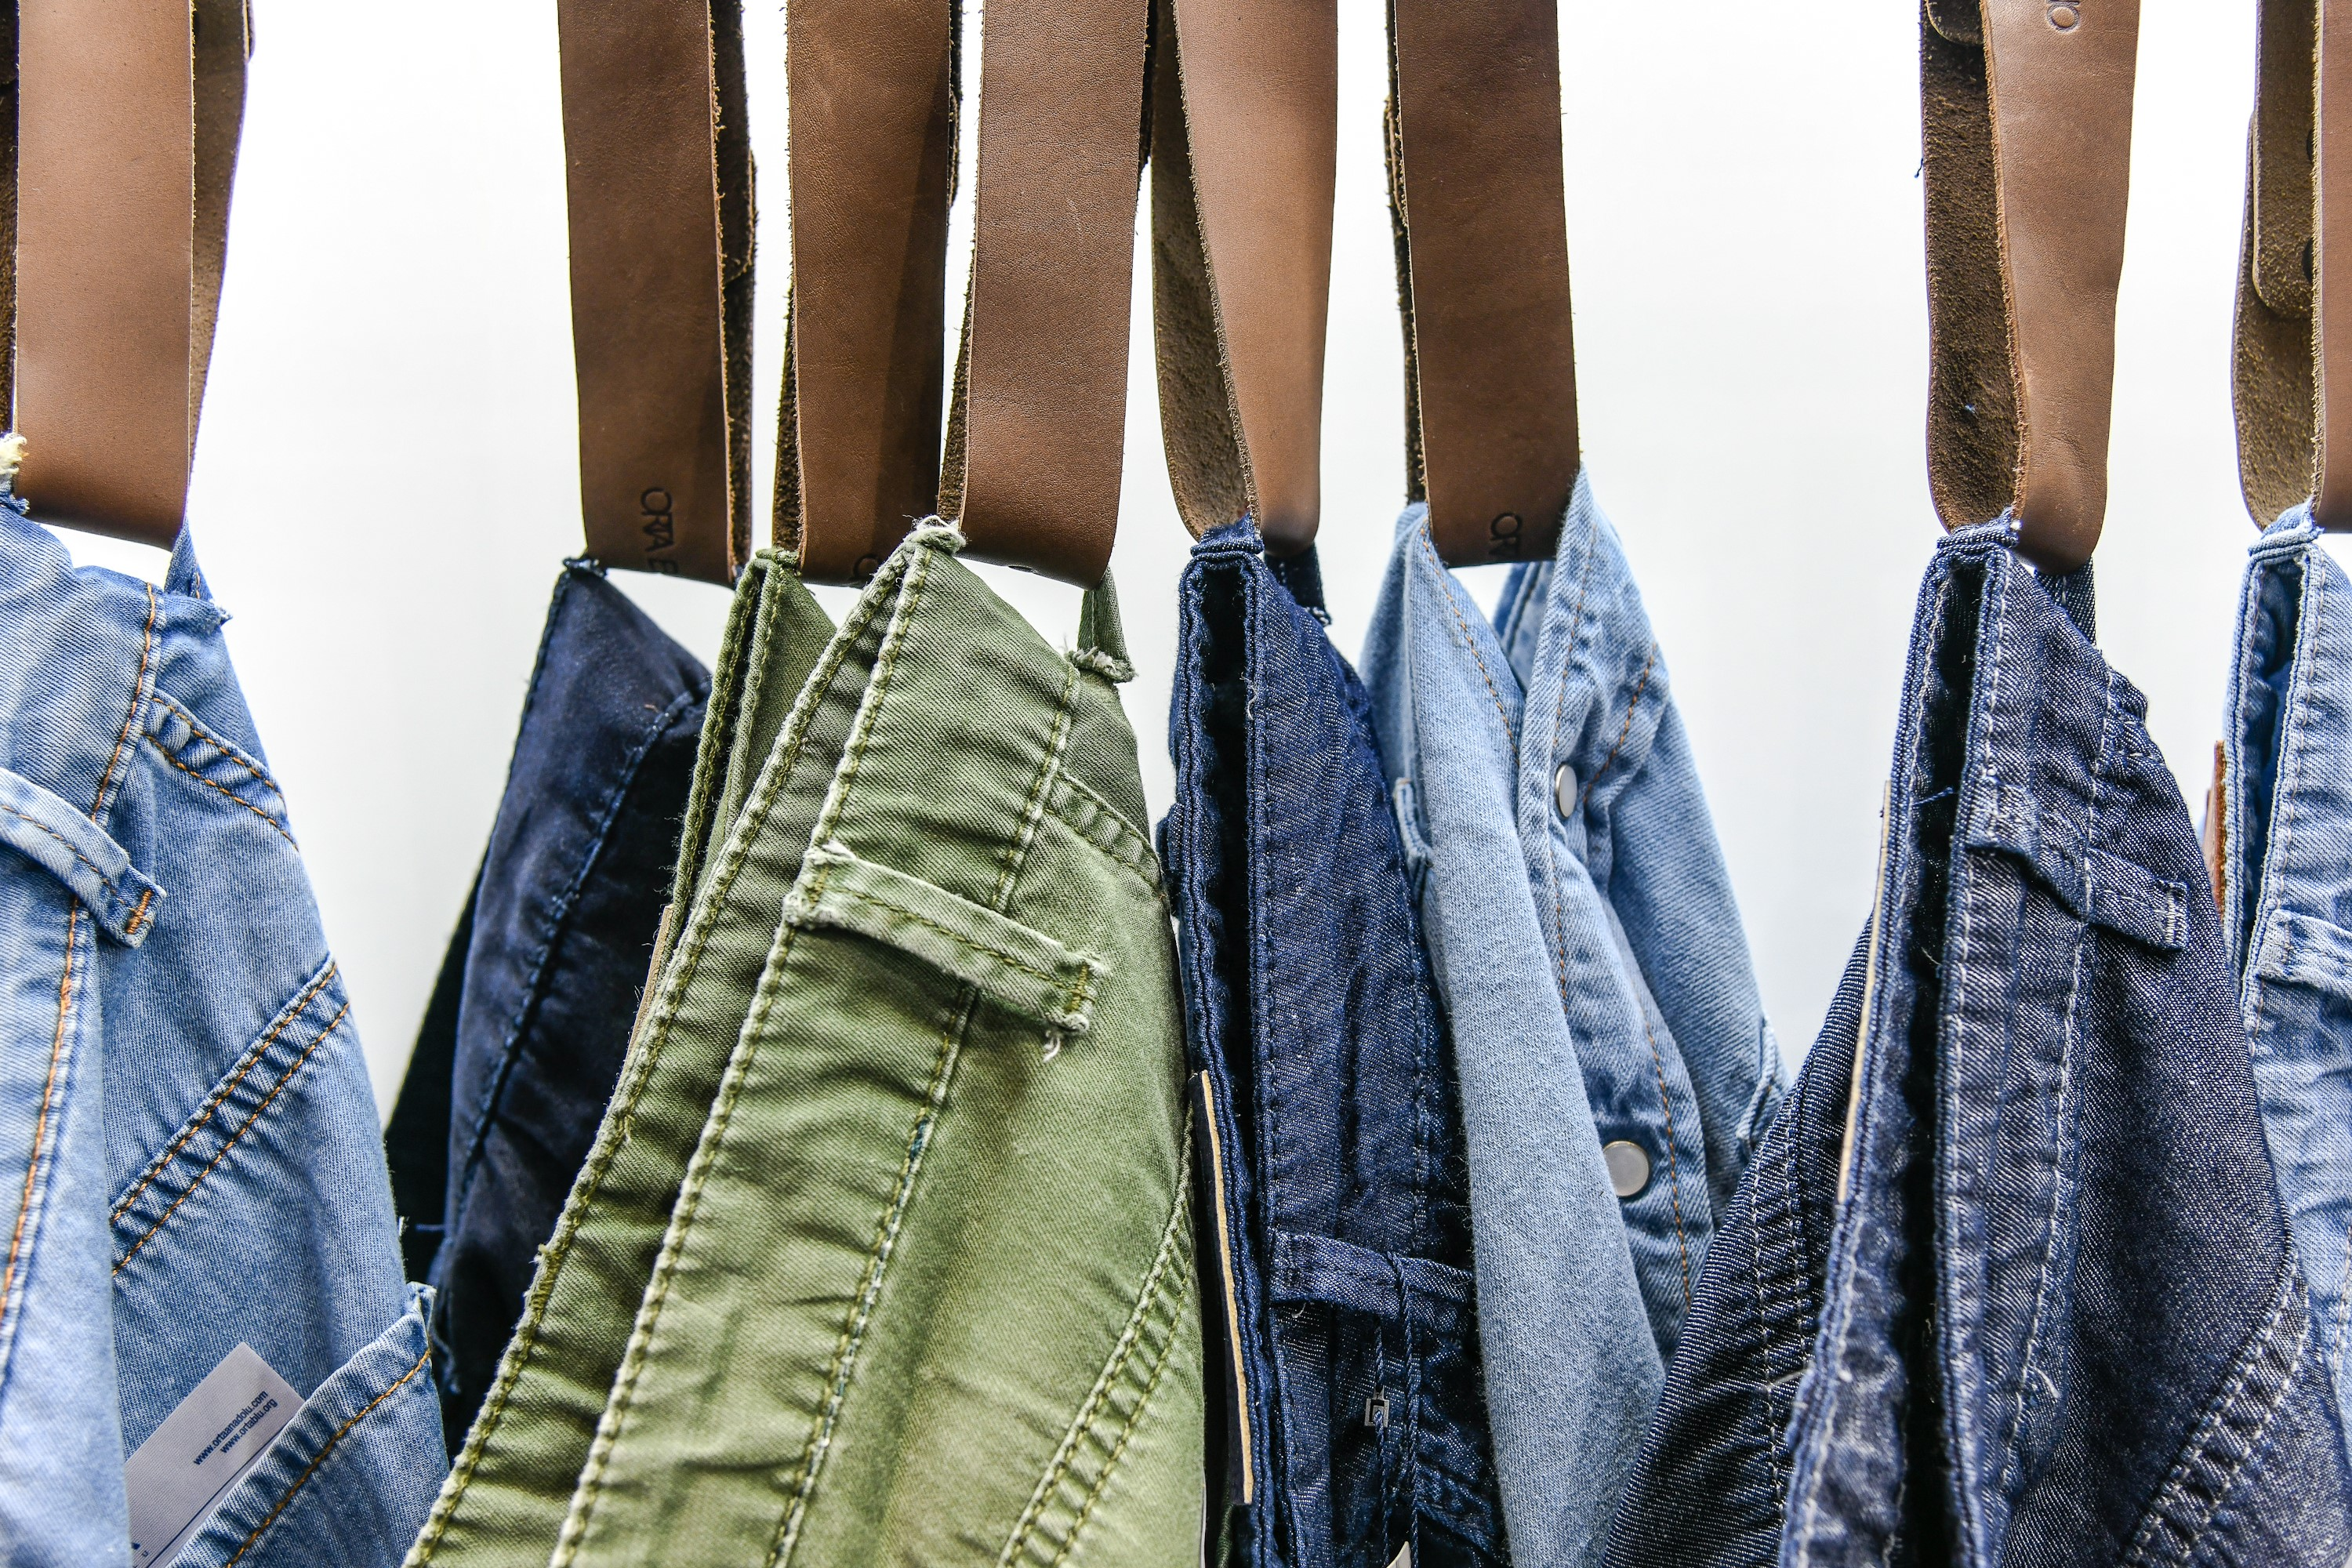 Beyond Denim focuses on sustainable practices